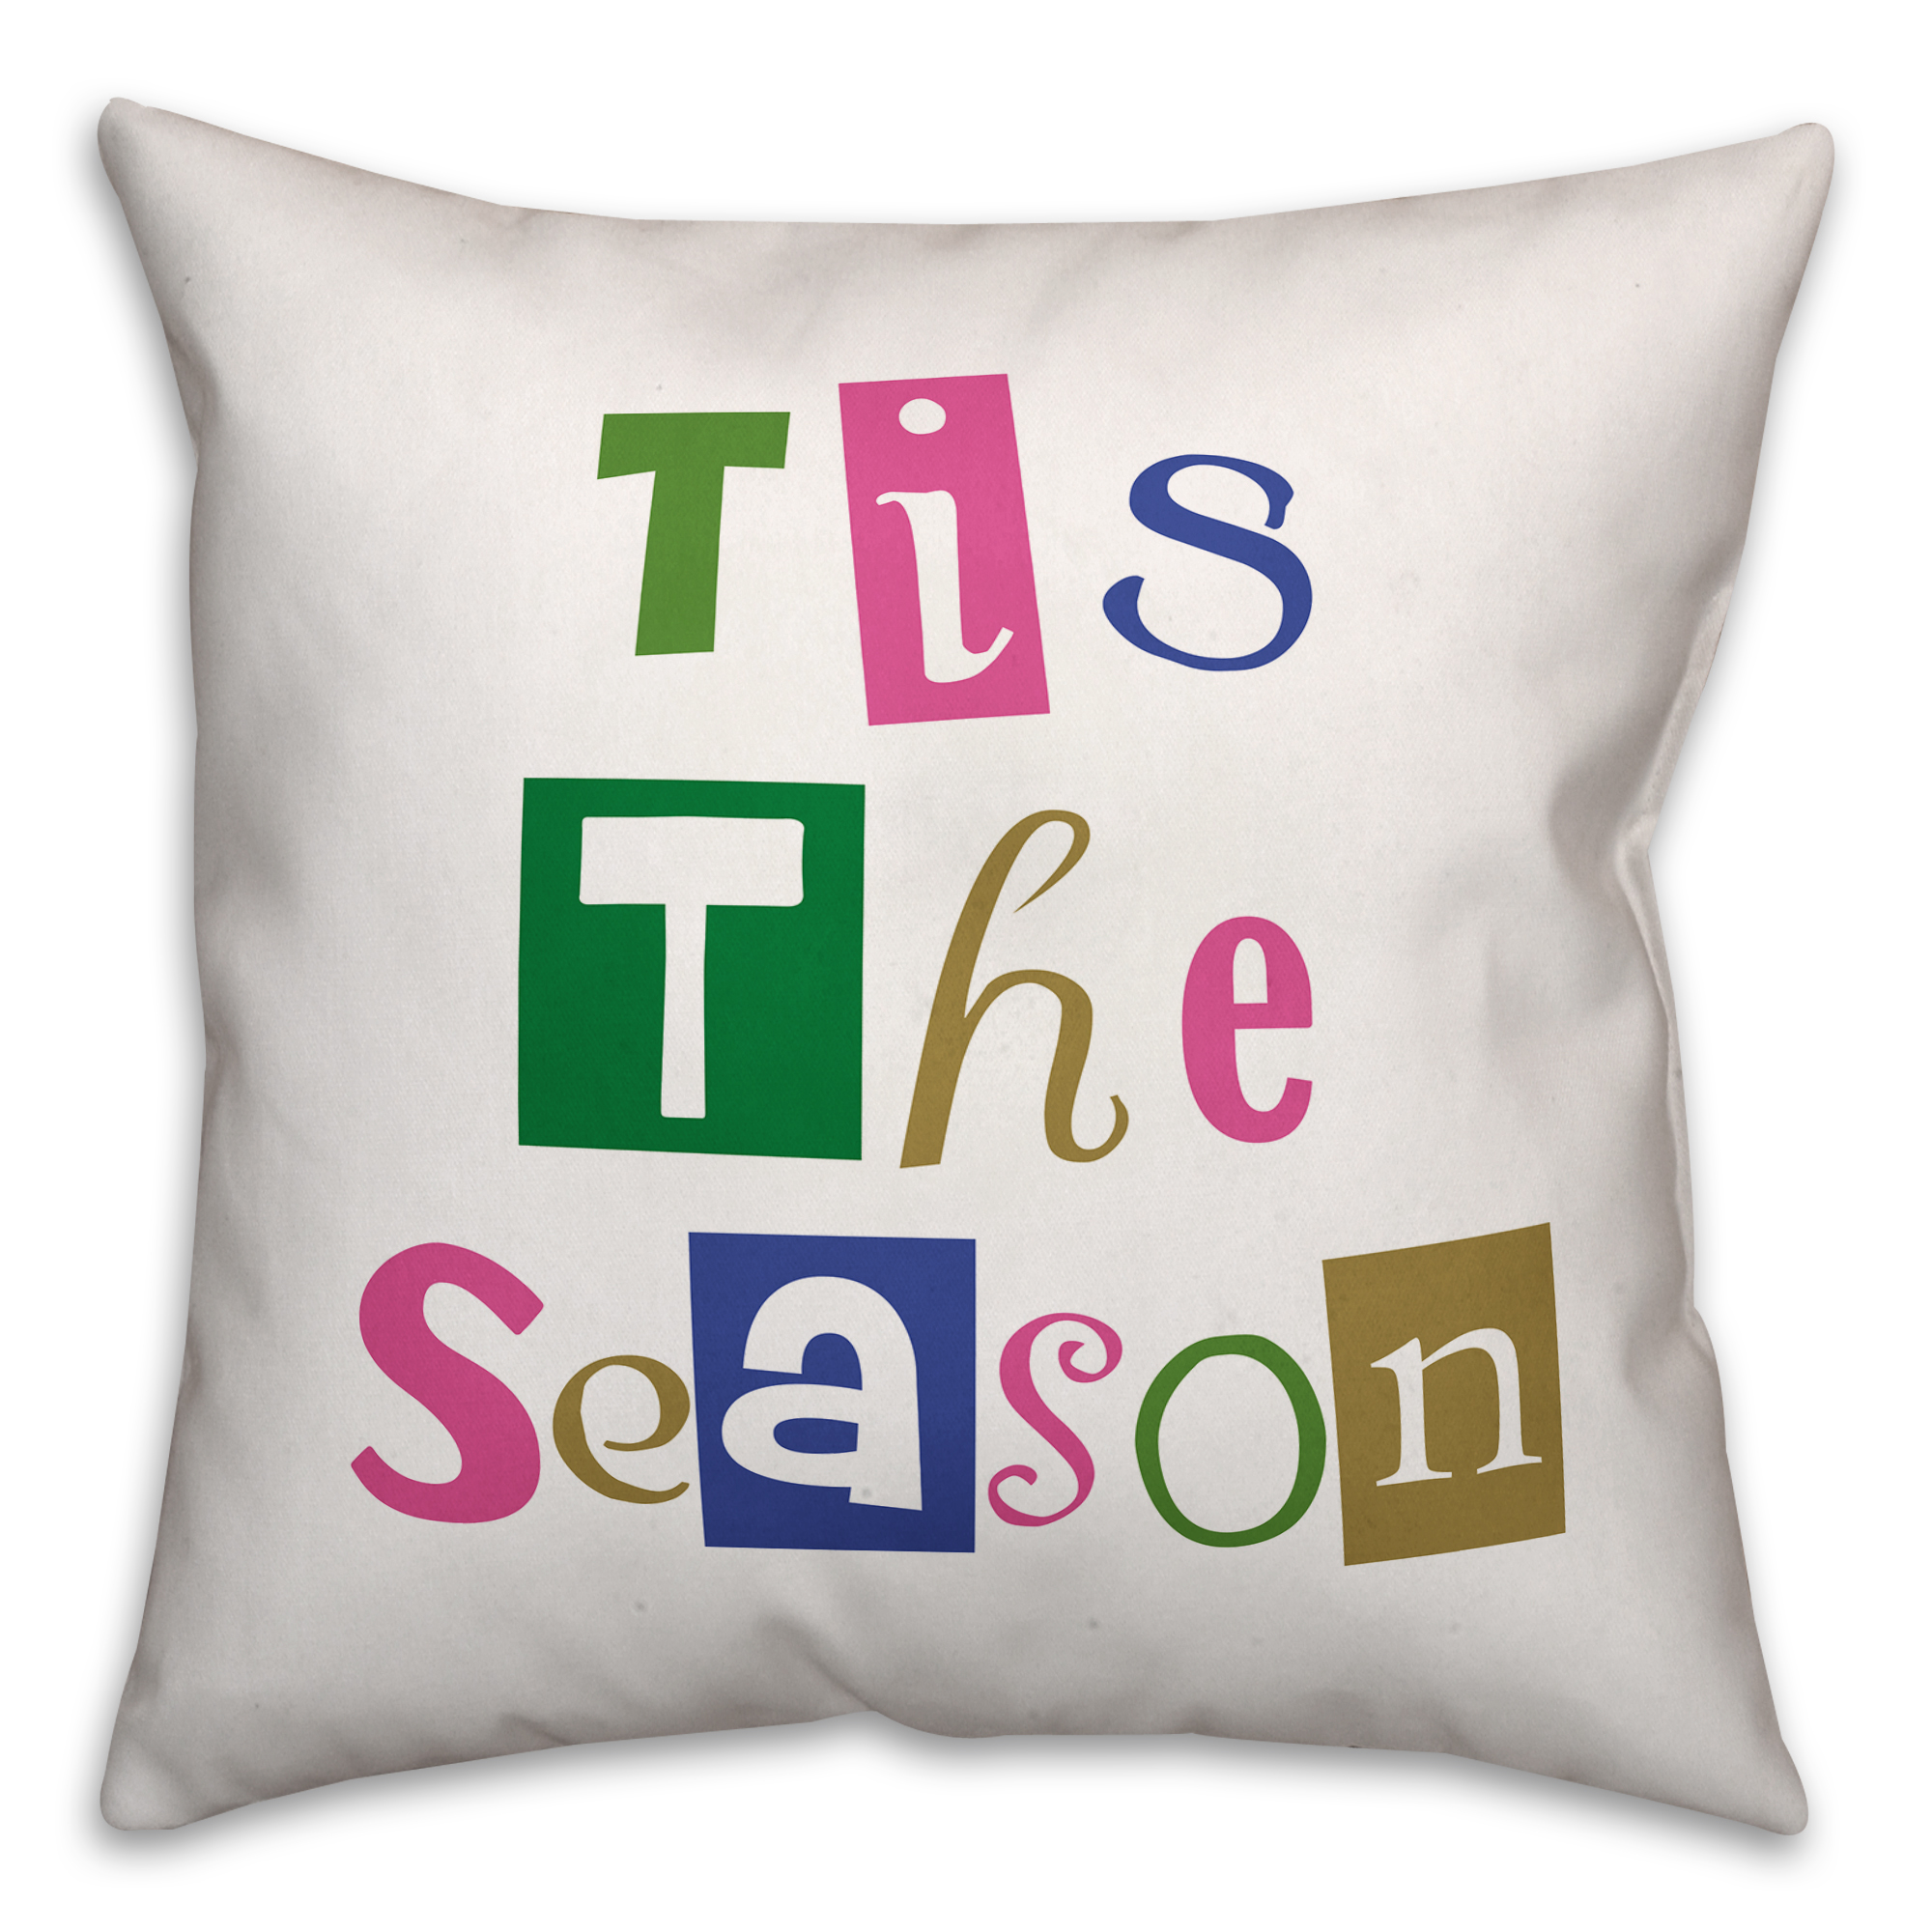 Tis the Season 18x18 Spun Poly Pillow